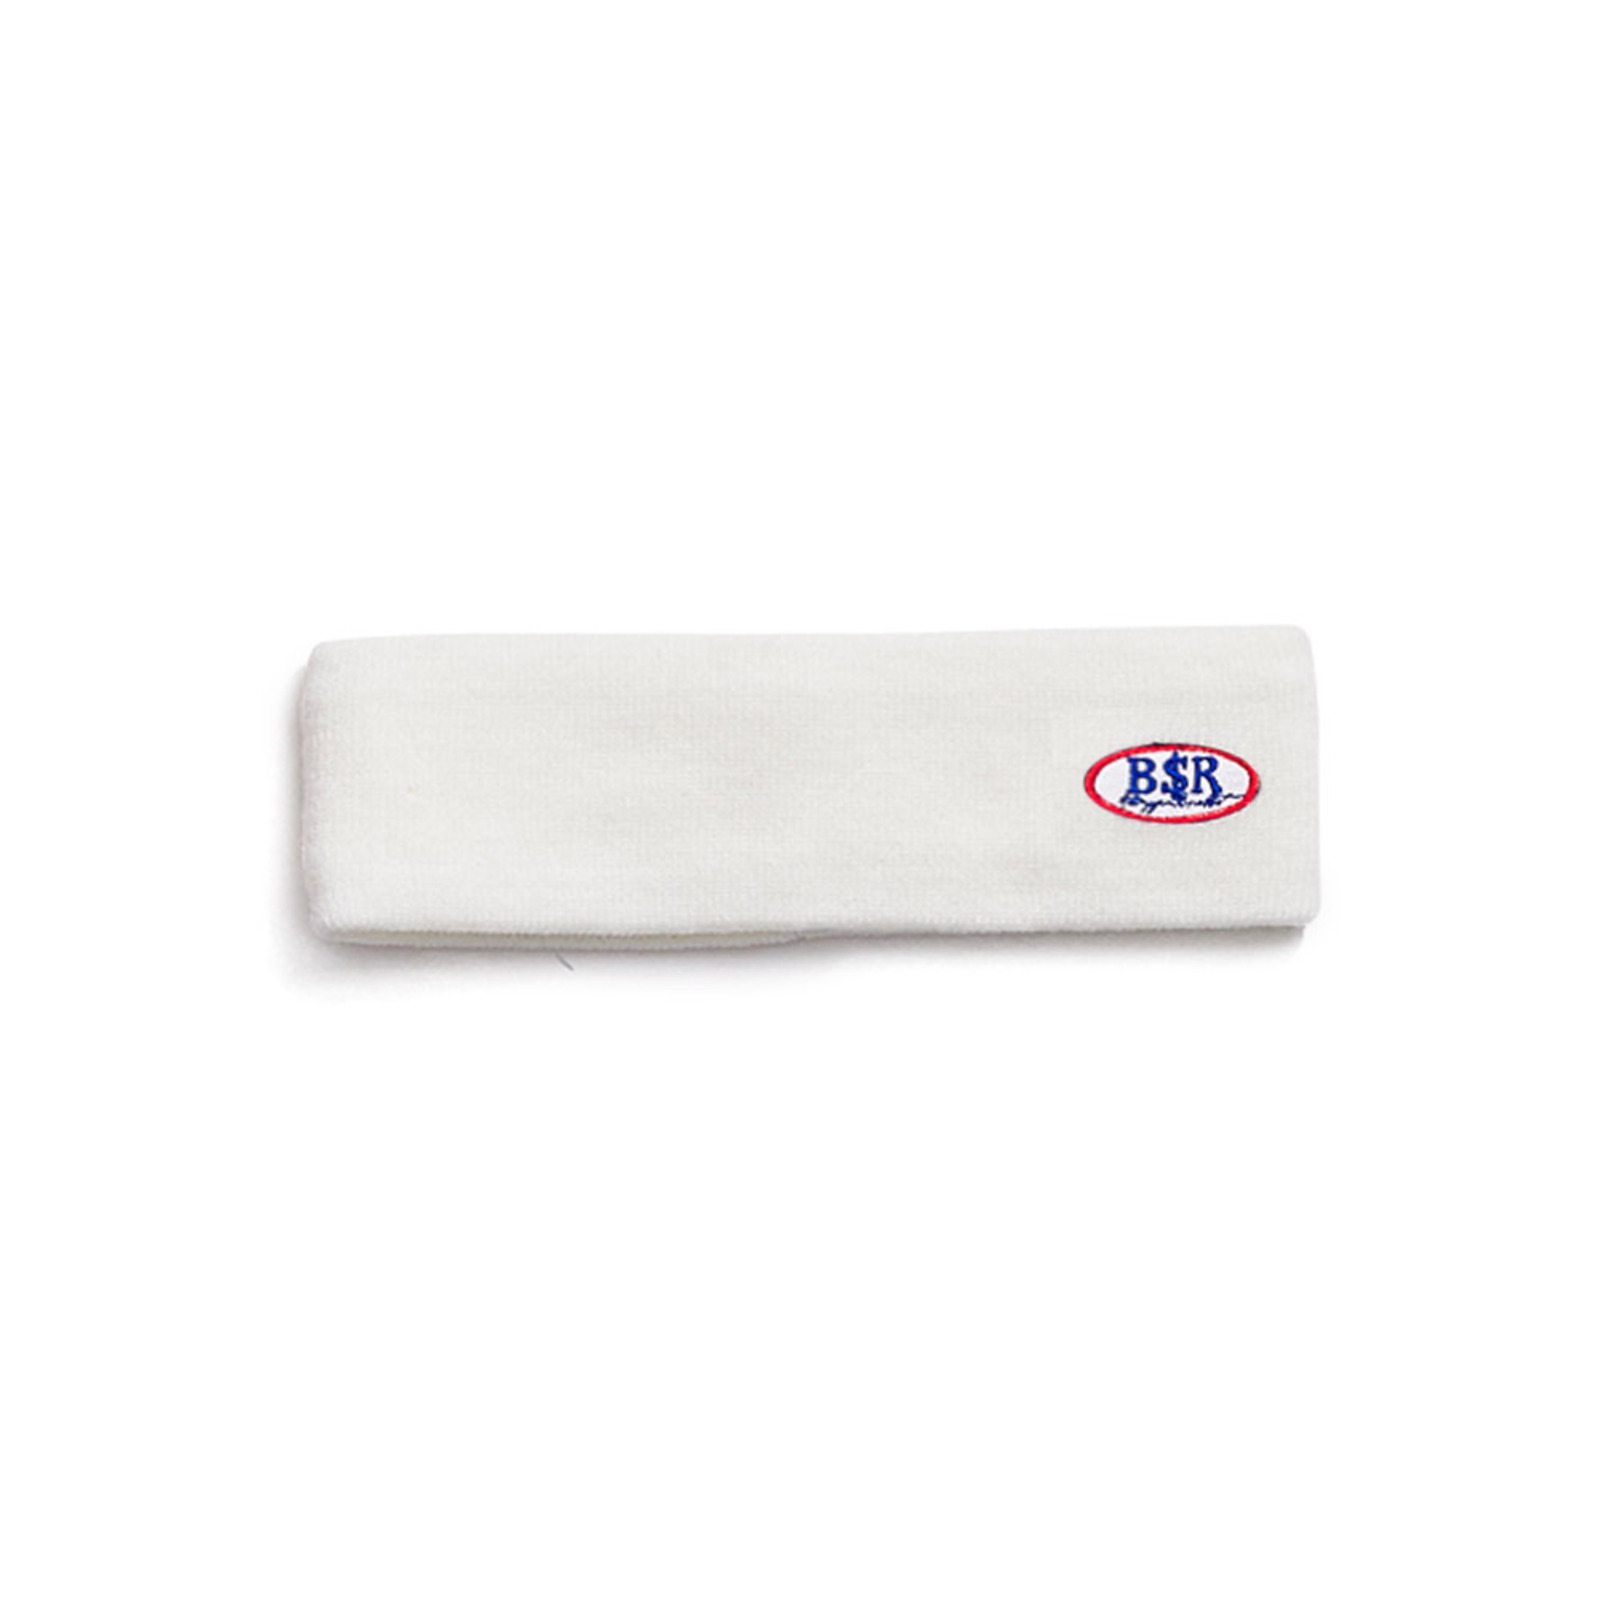 BSR WAPPEN KNIT HEADBAND WHITE